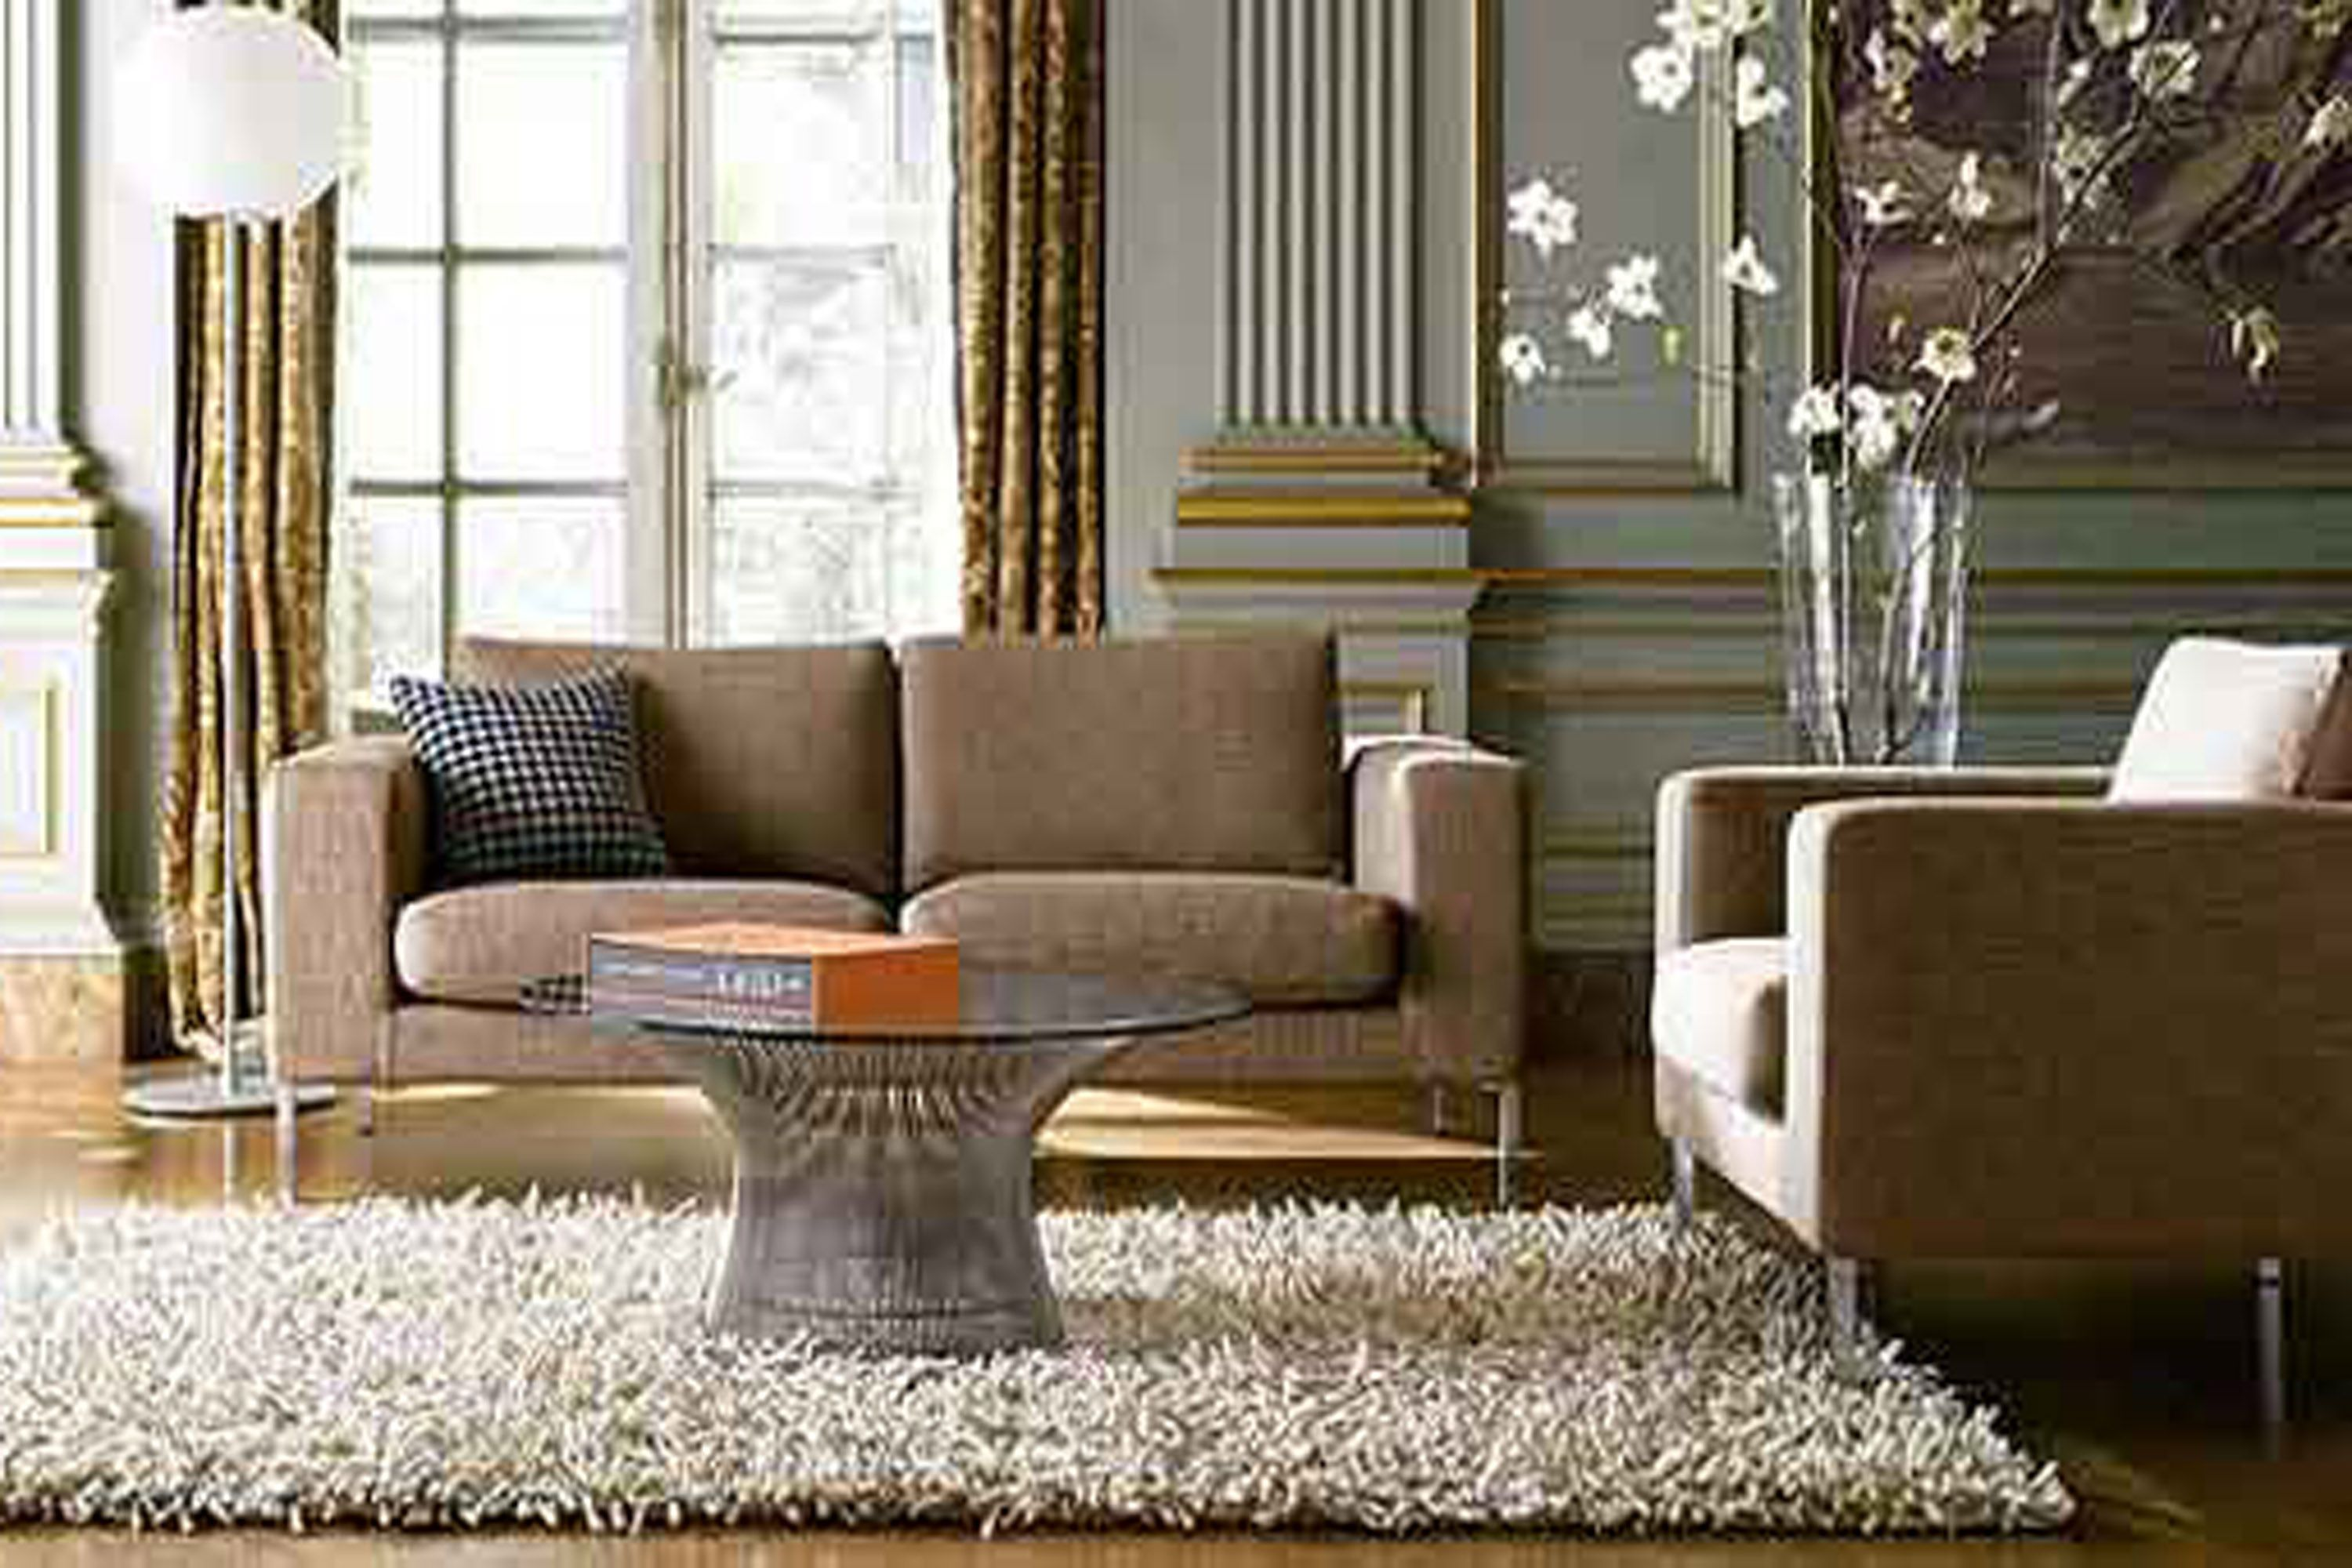 Living room design brown couch - Living Room Ideas With Light Brown Sofas Visi Build